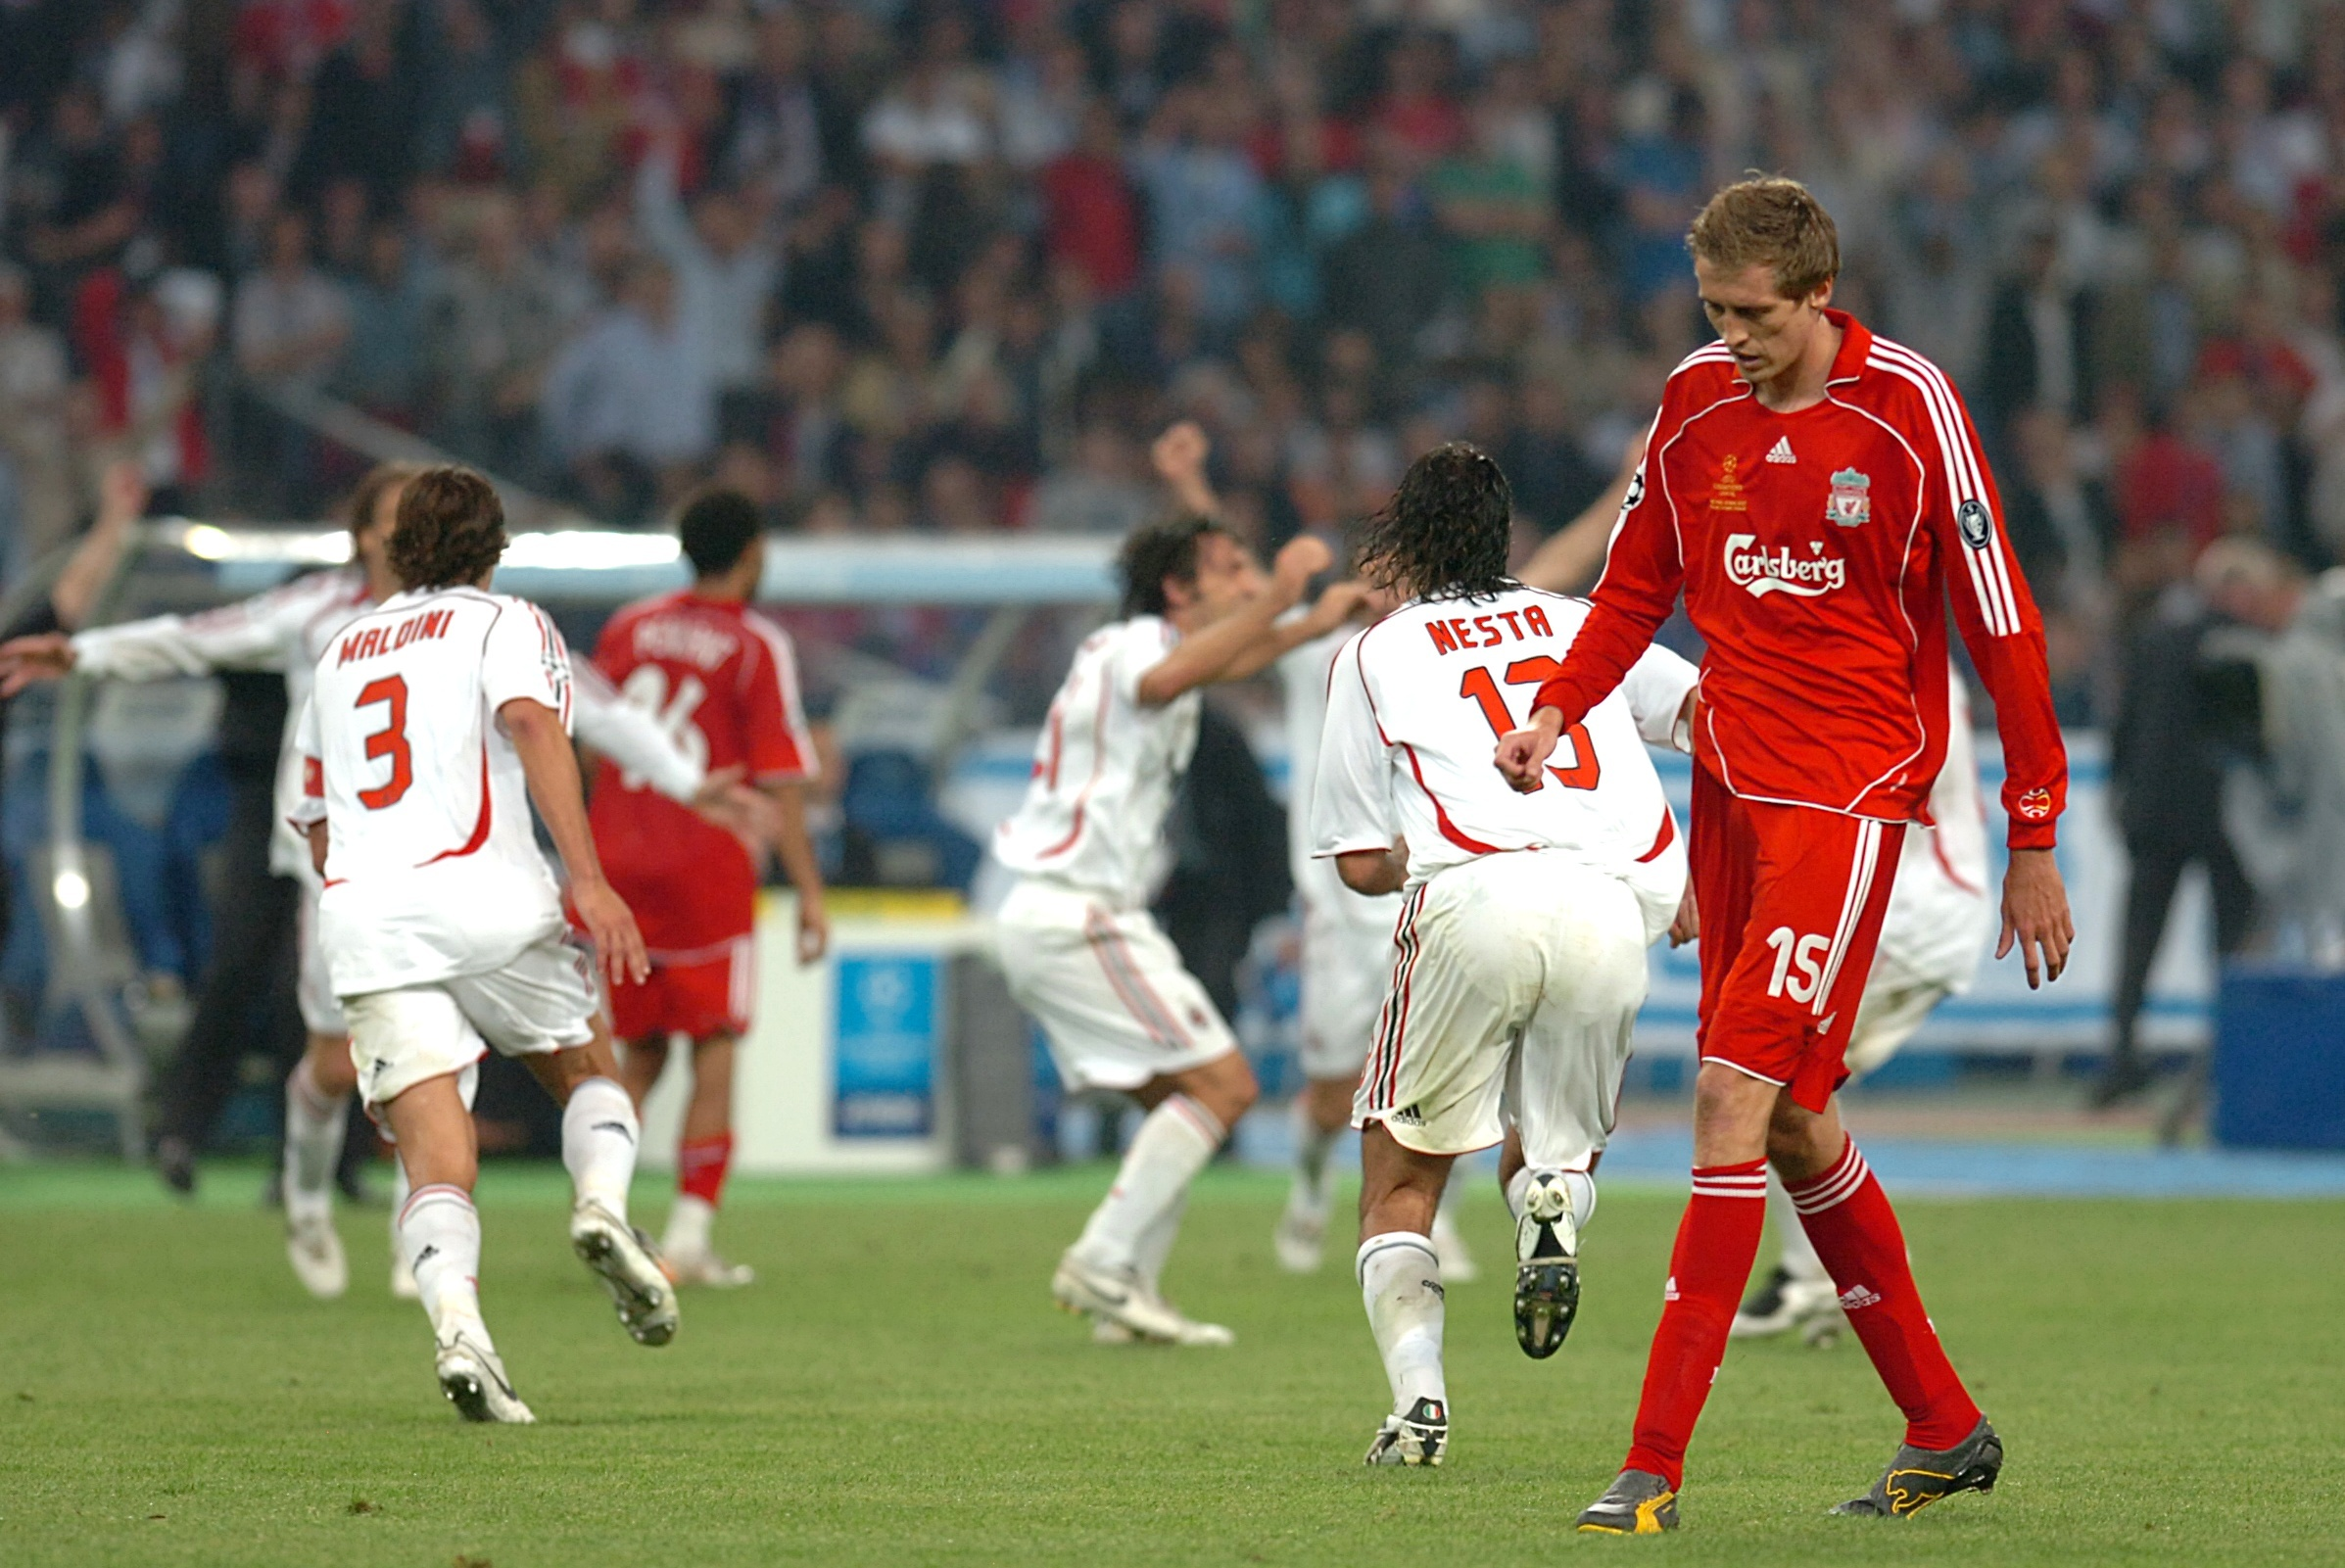 Crouch after Milan had beaten them in the final. Image: PA Images